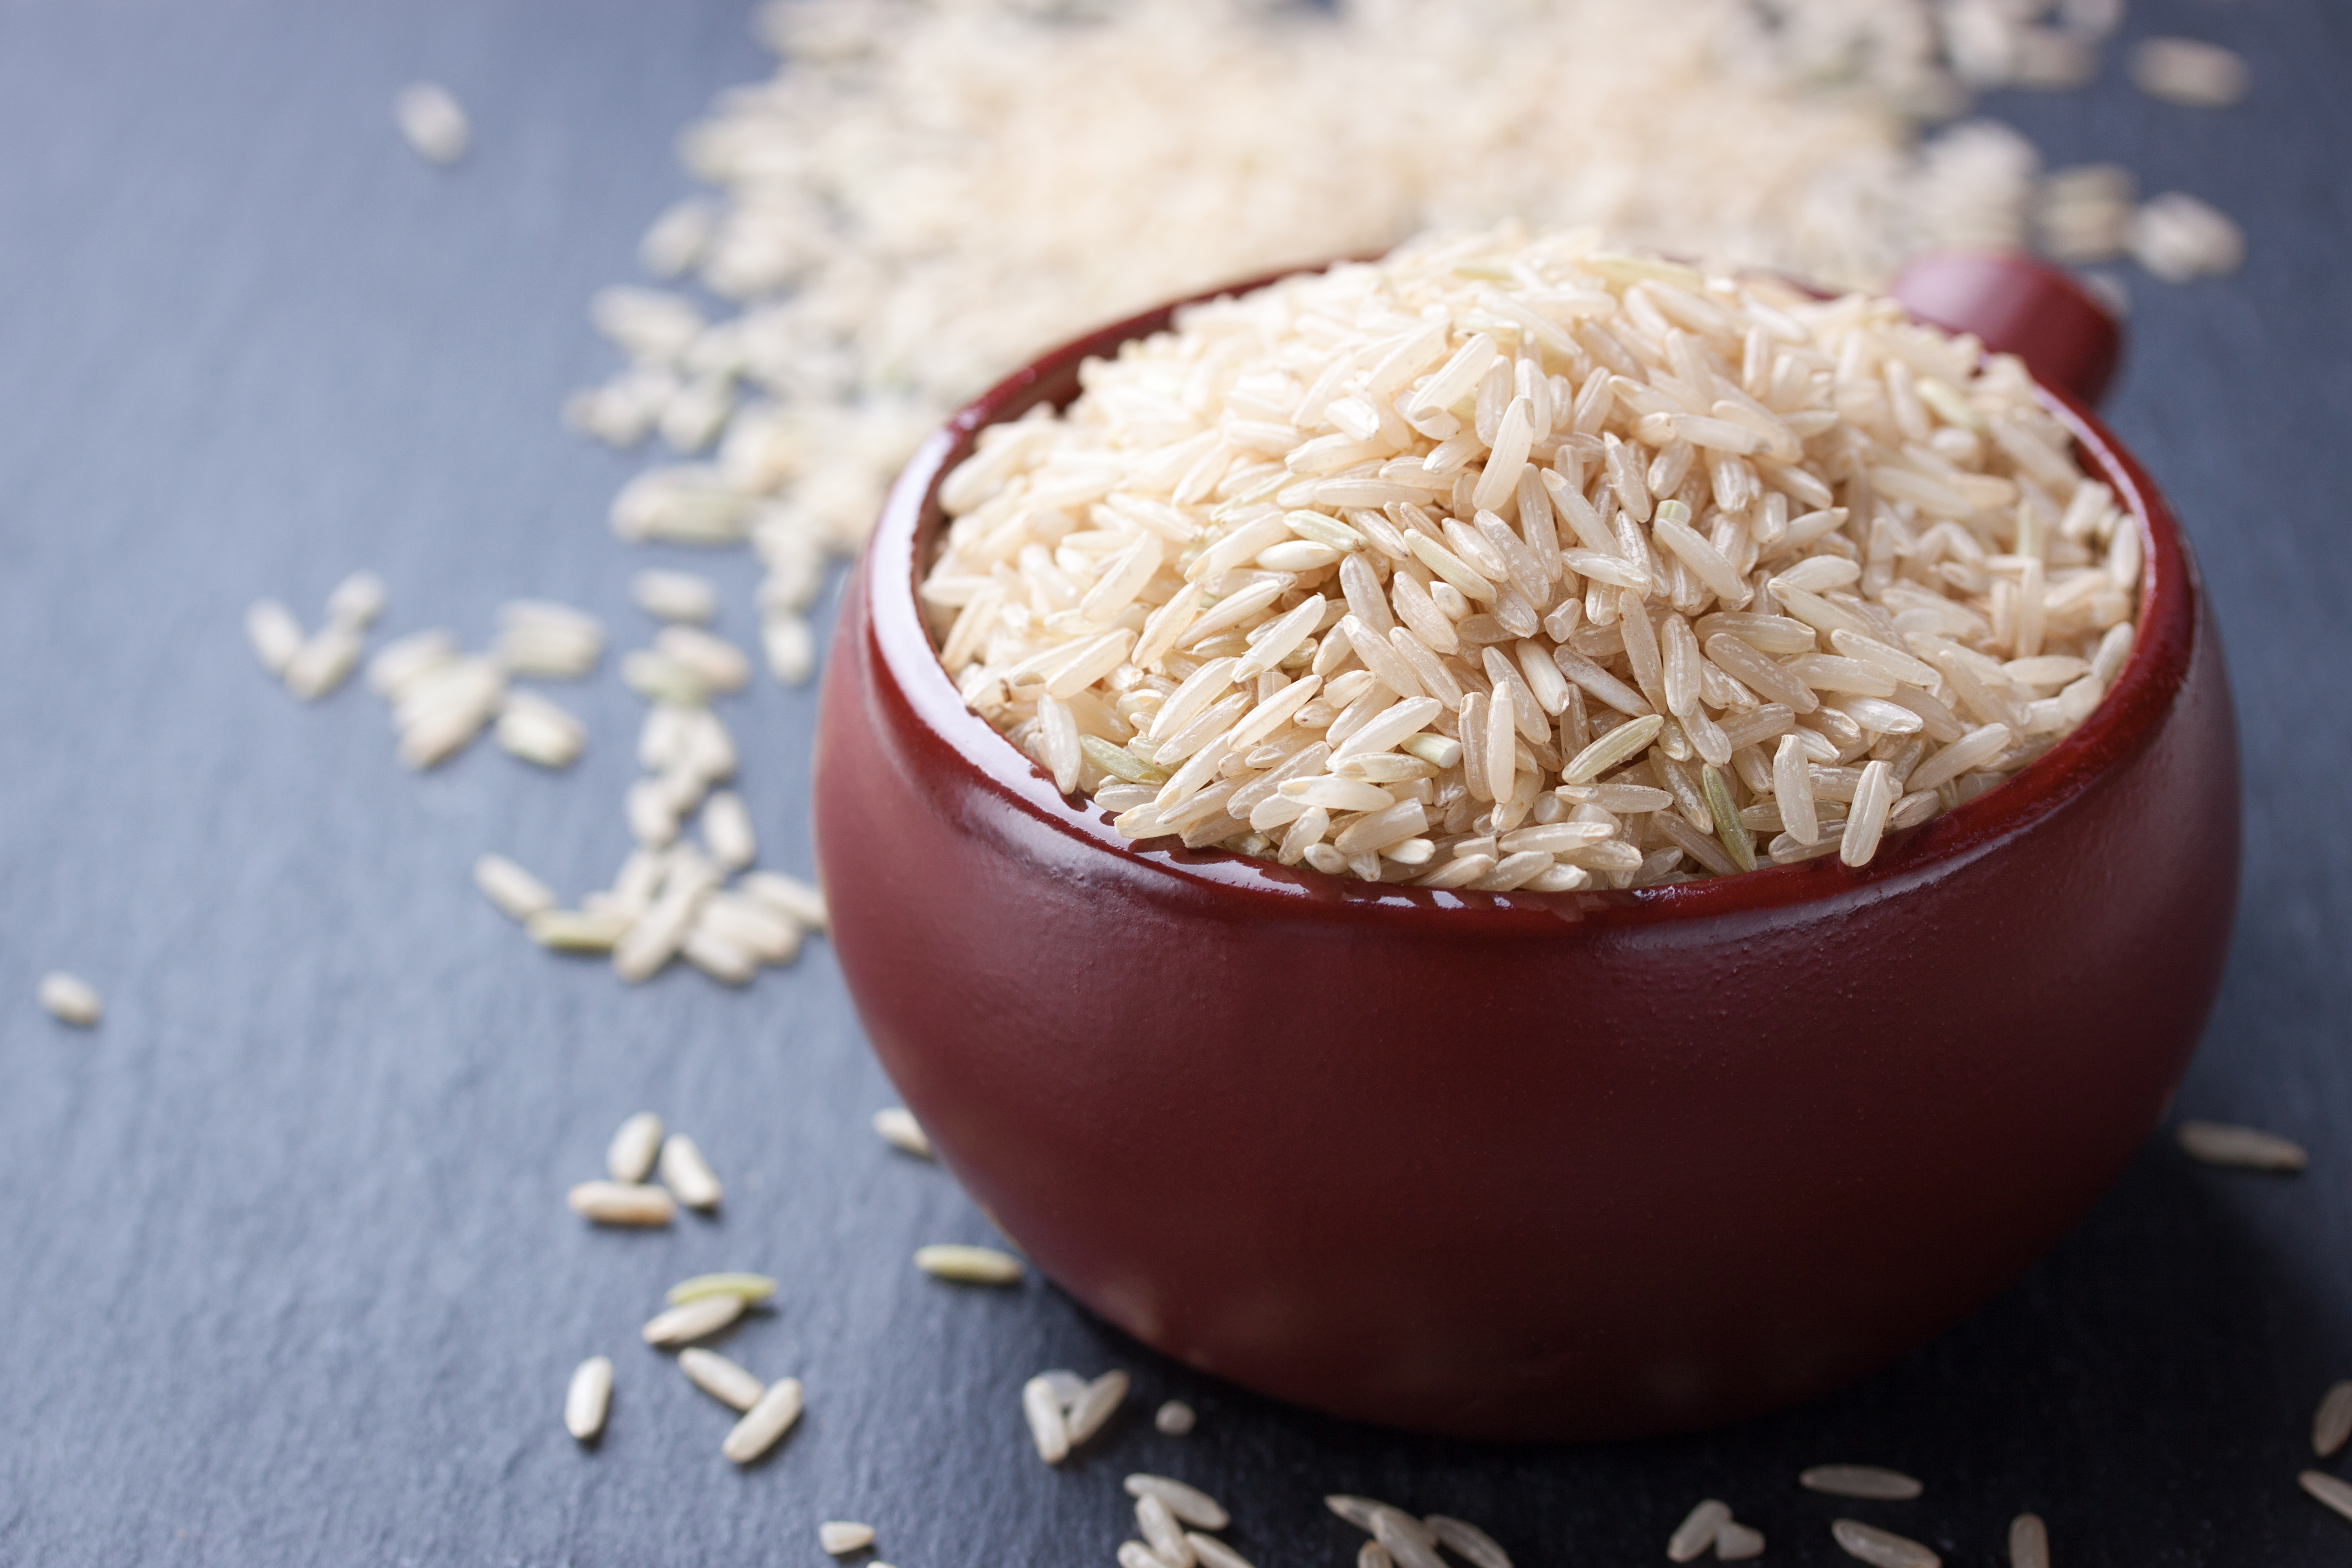 Natural rice in a red ceramic bowl on stone background. closeup